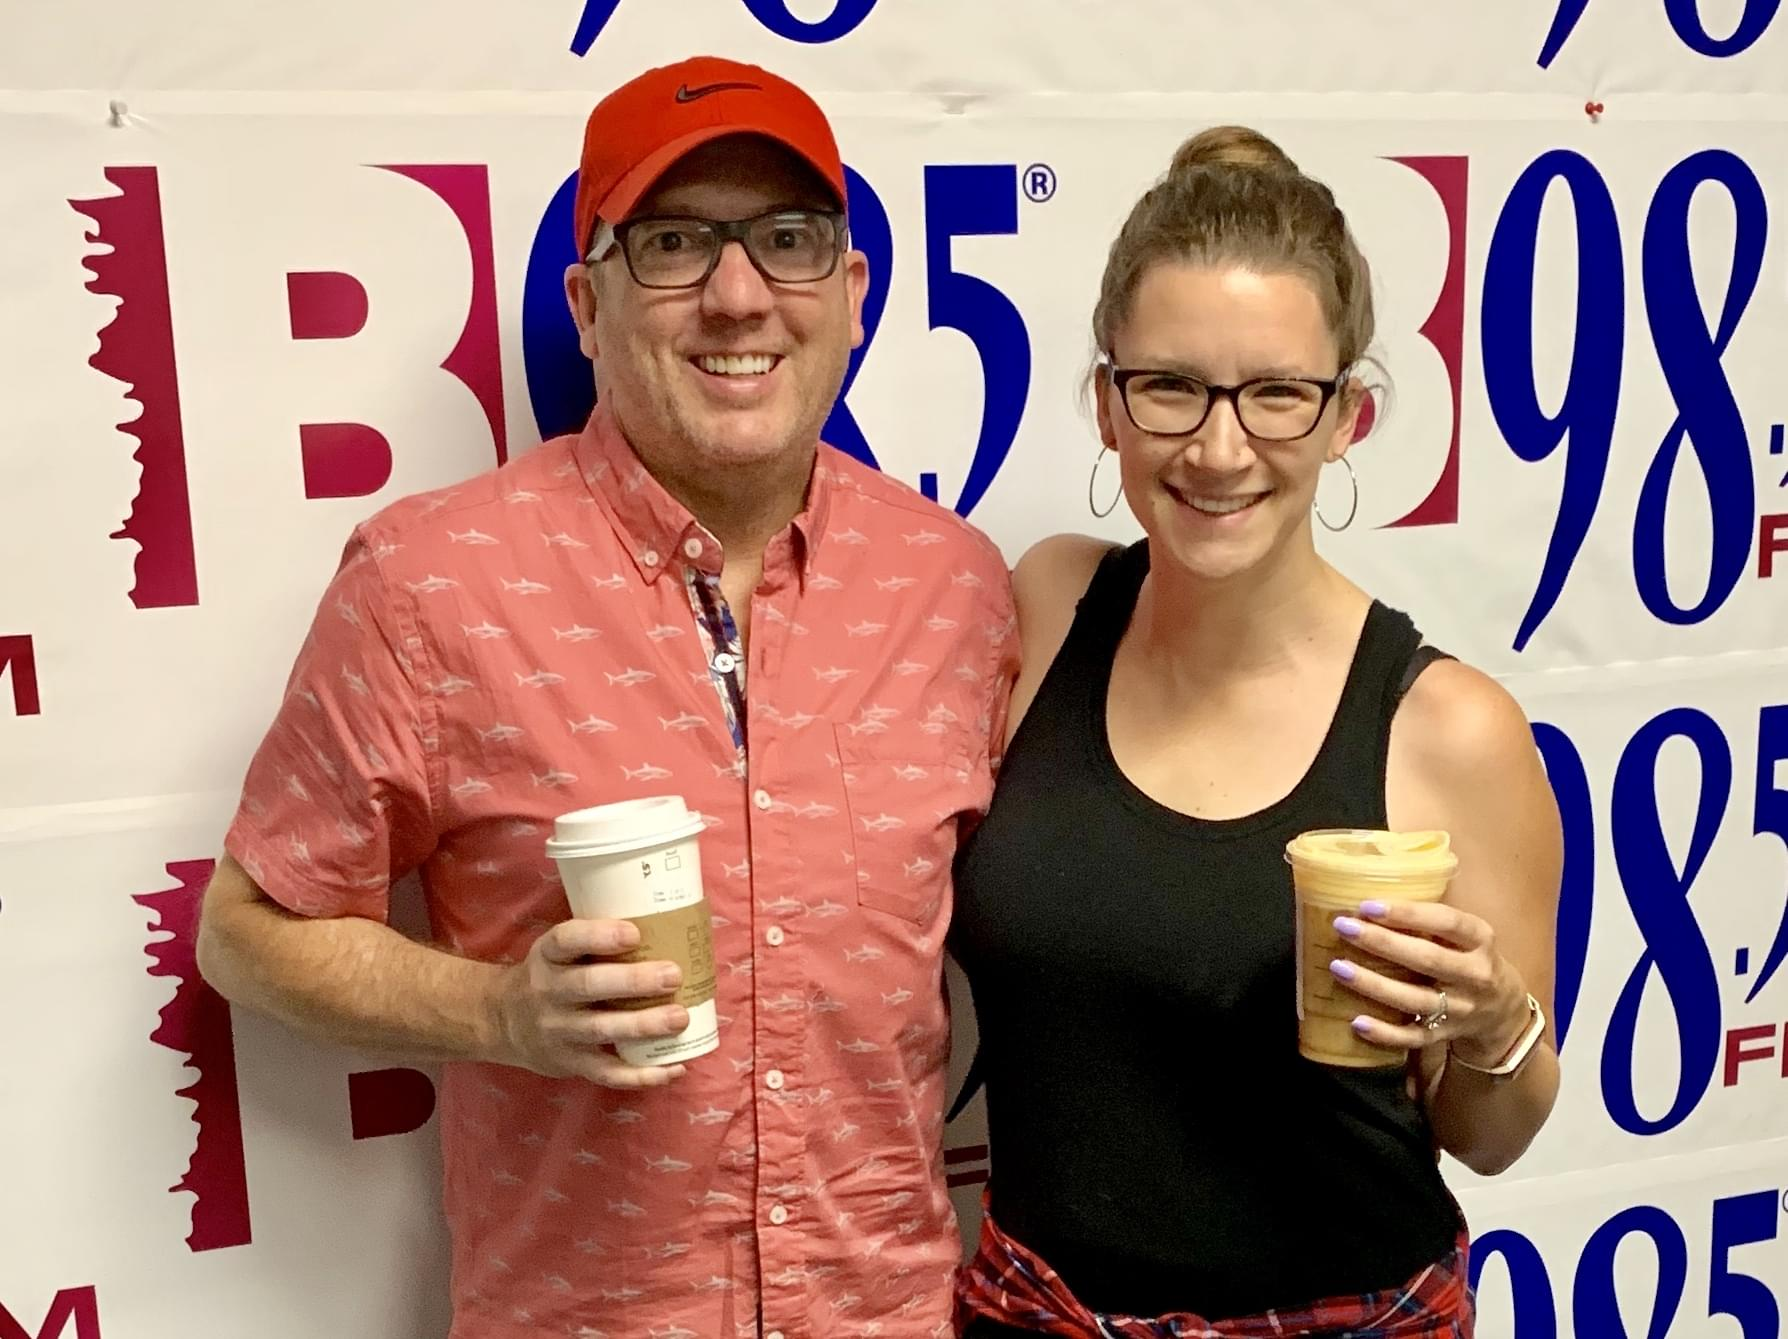 Kevin and Robyn: Back to BASIC with the PSL